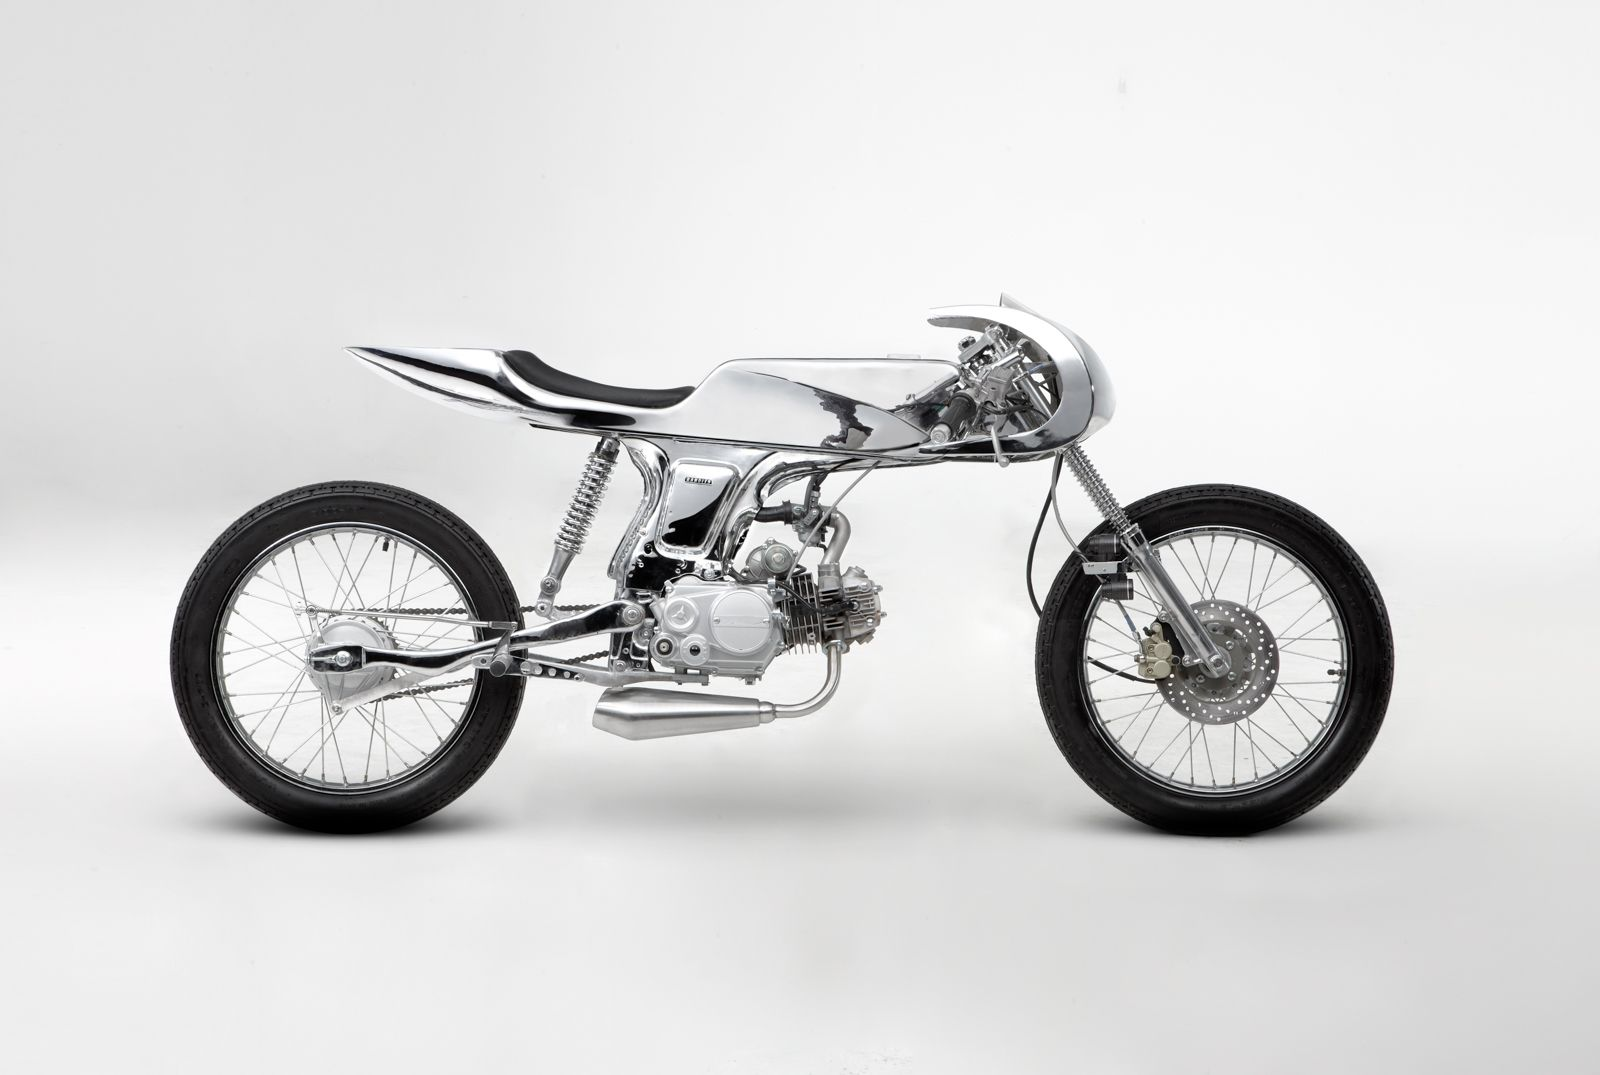 Bandit9, custom motorcycle, honda, motorcycle